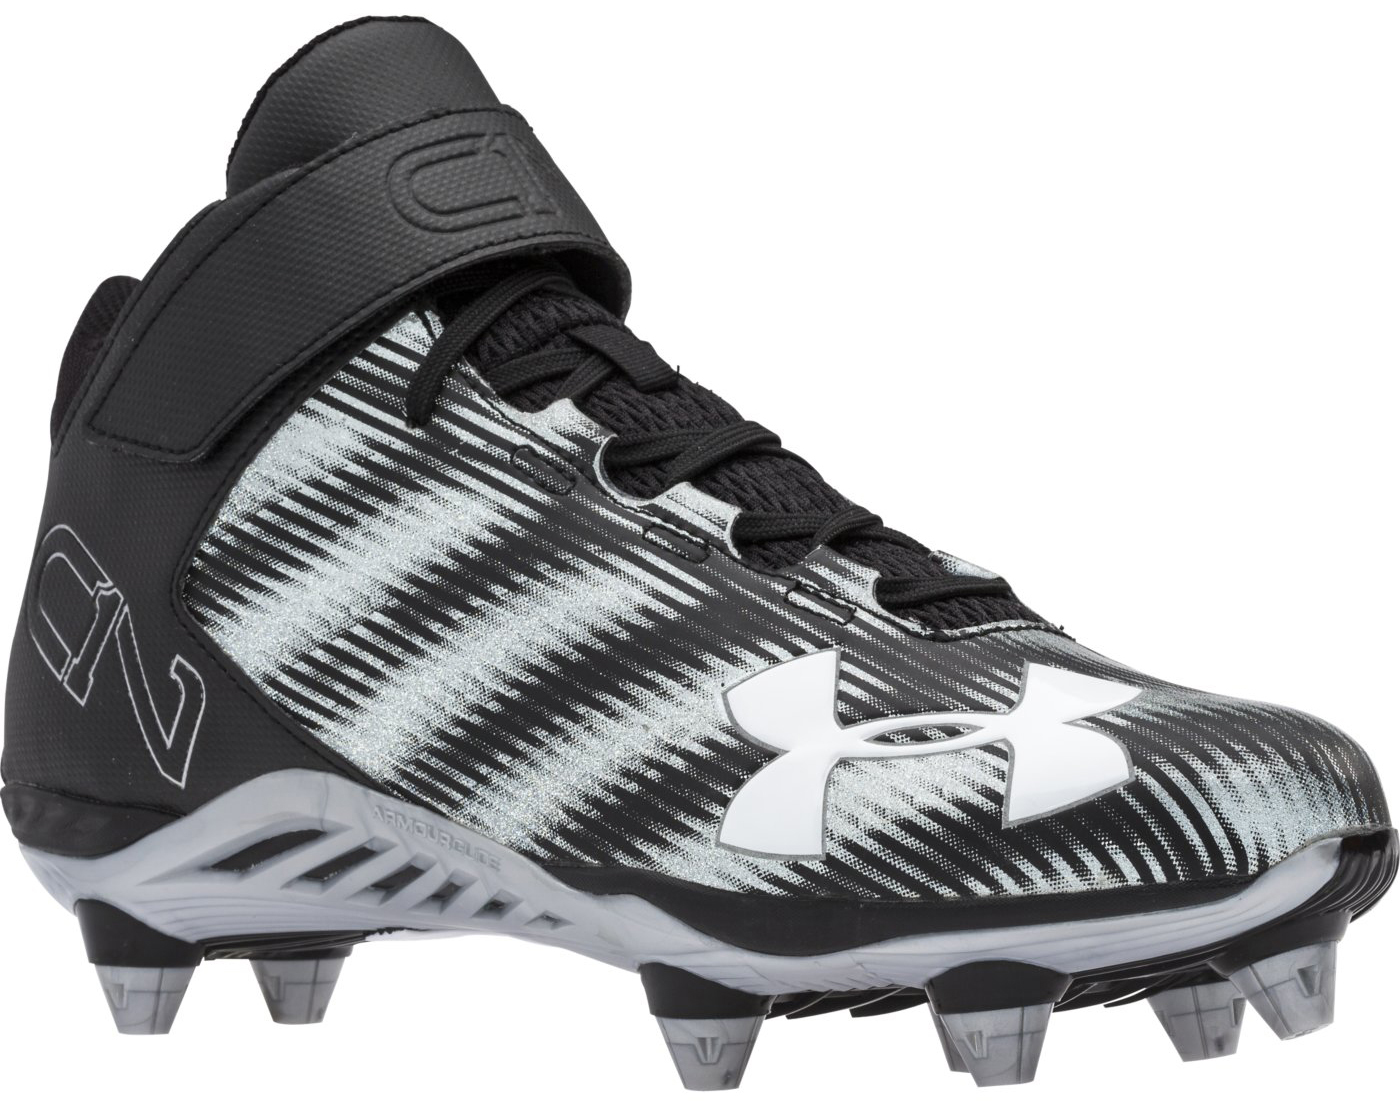 Under Armour Mens Wide Shoes